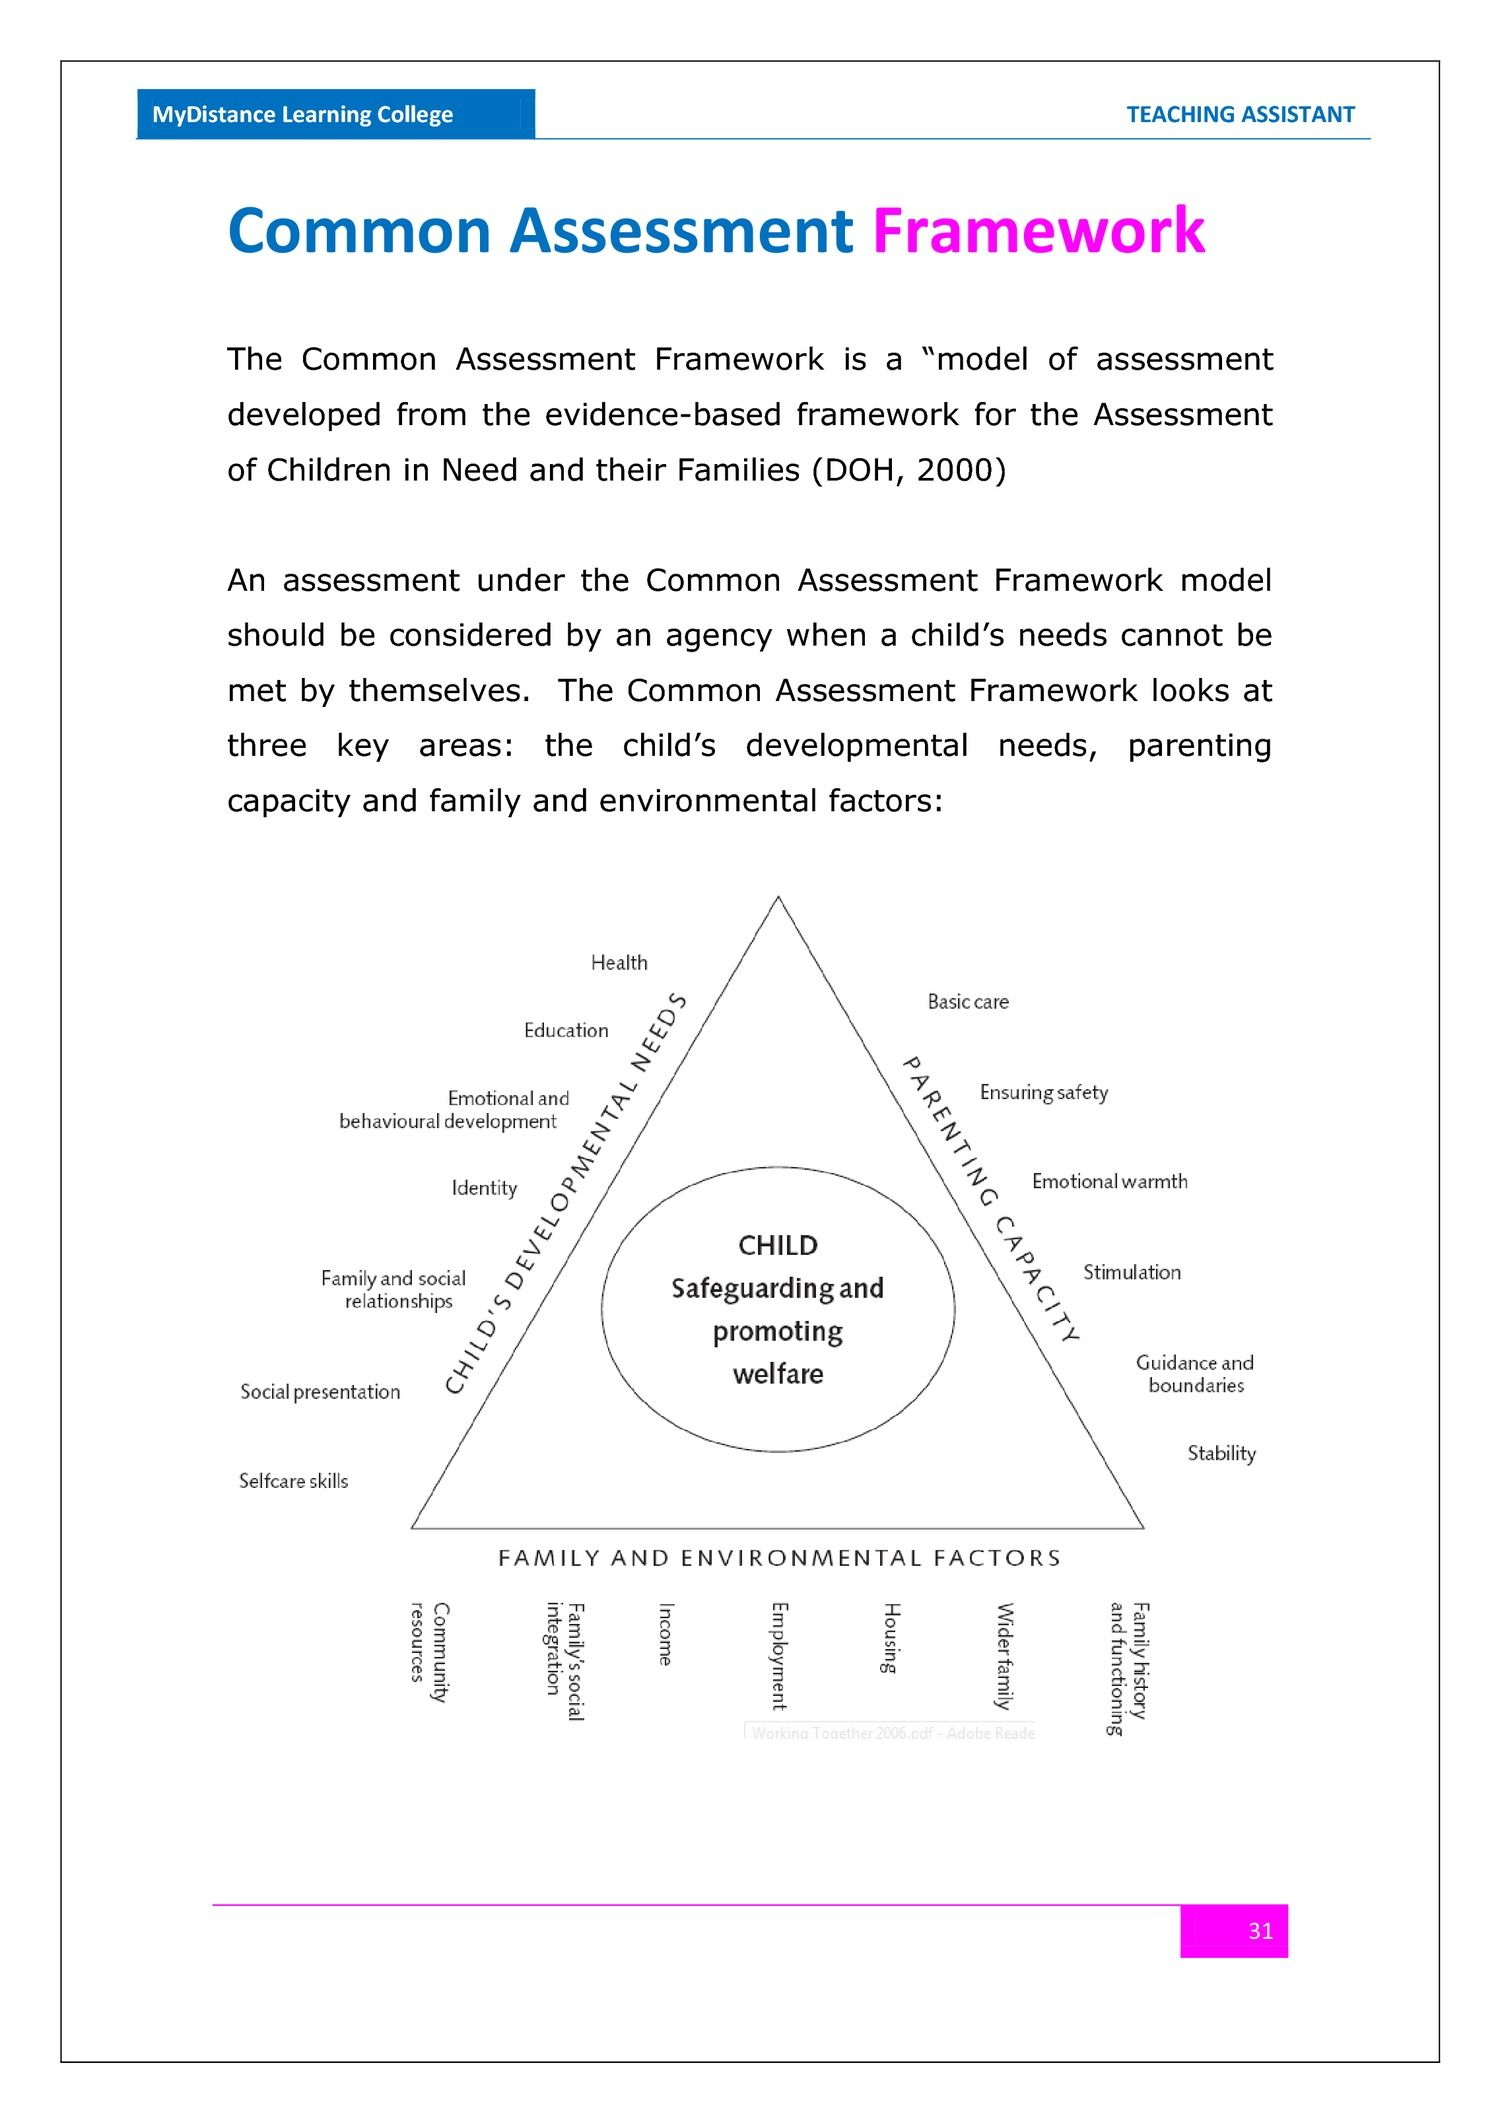 Common Assessment Framework For Assessment Of Children In Need And Their Families Working